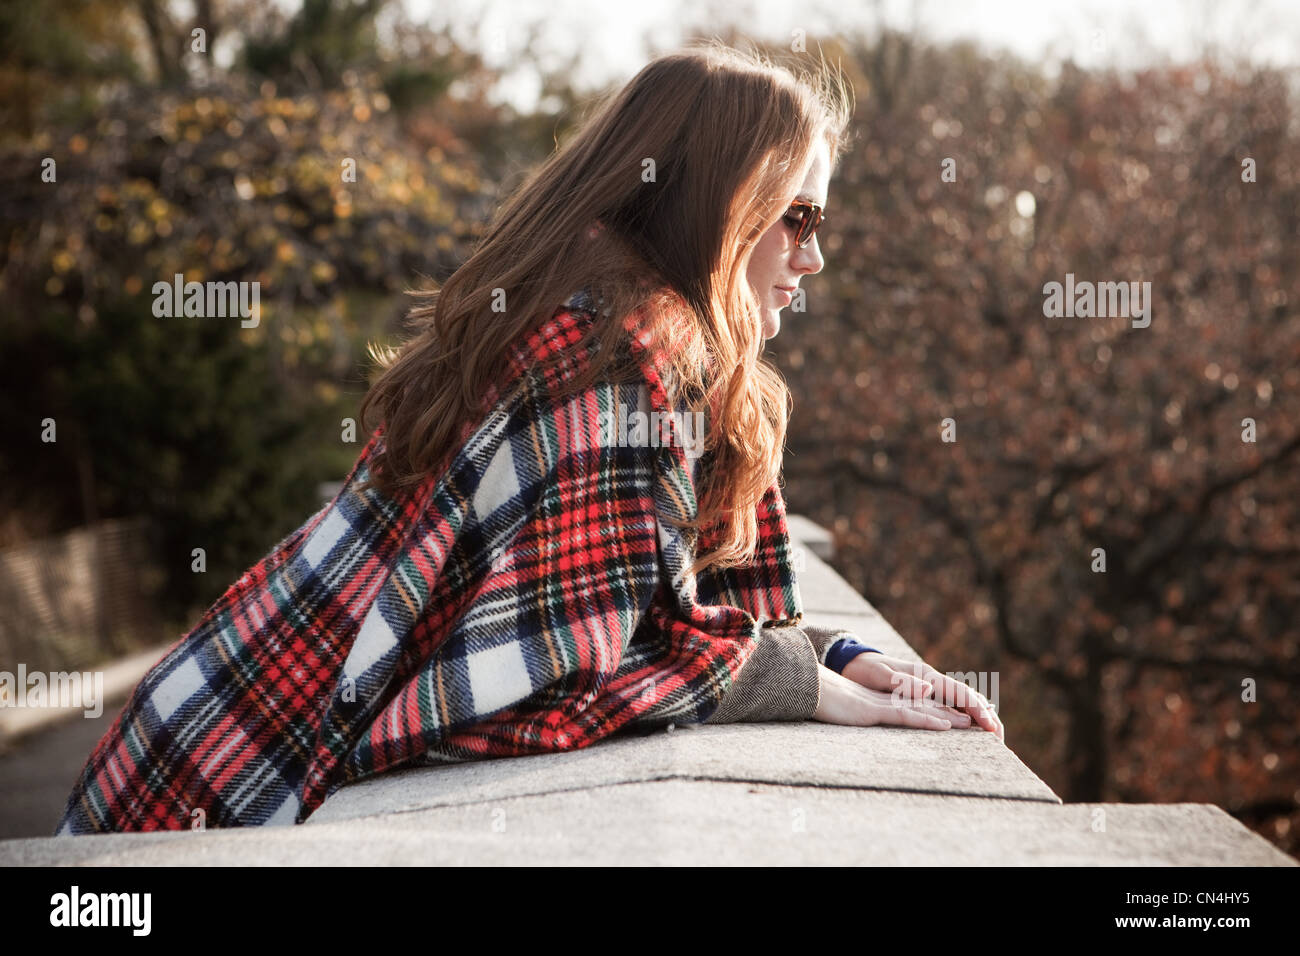 Girl with plaid blanket looking over wall - Stock Image